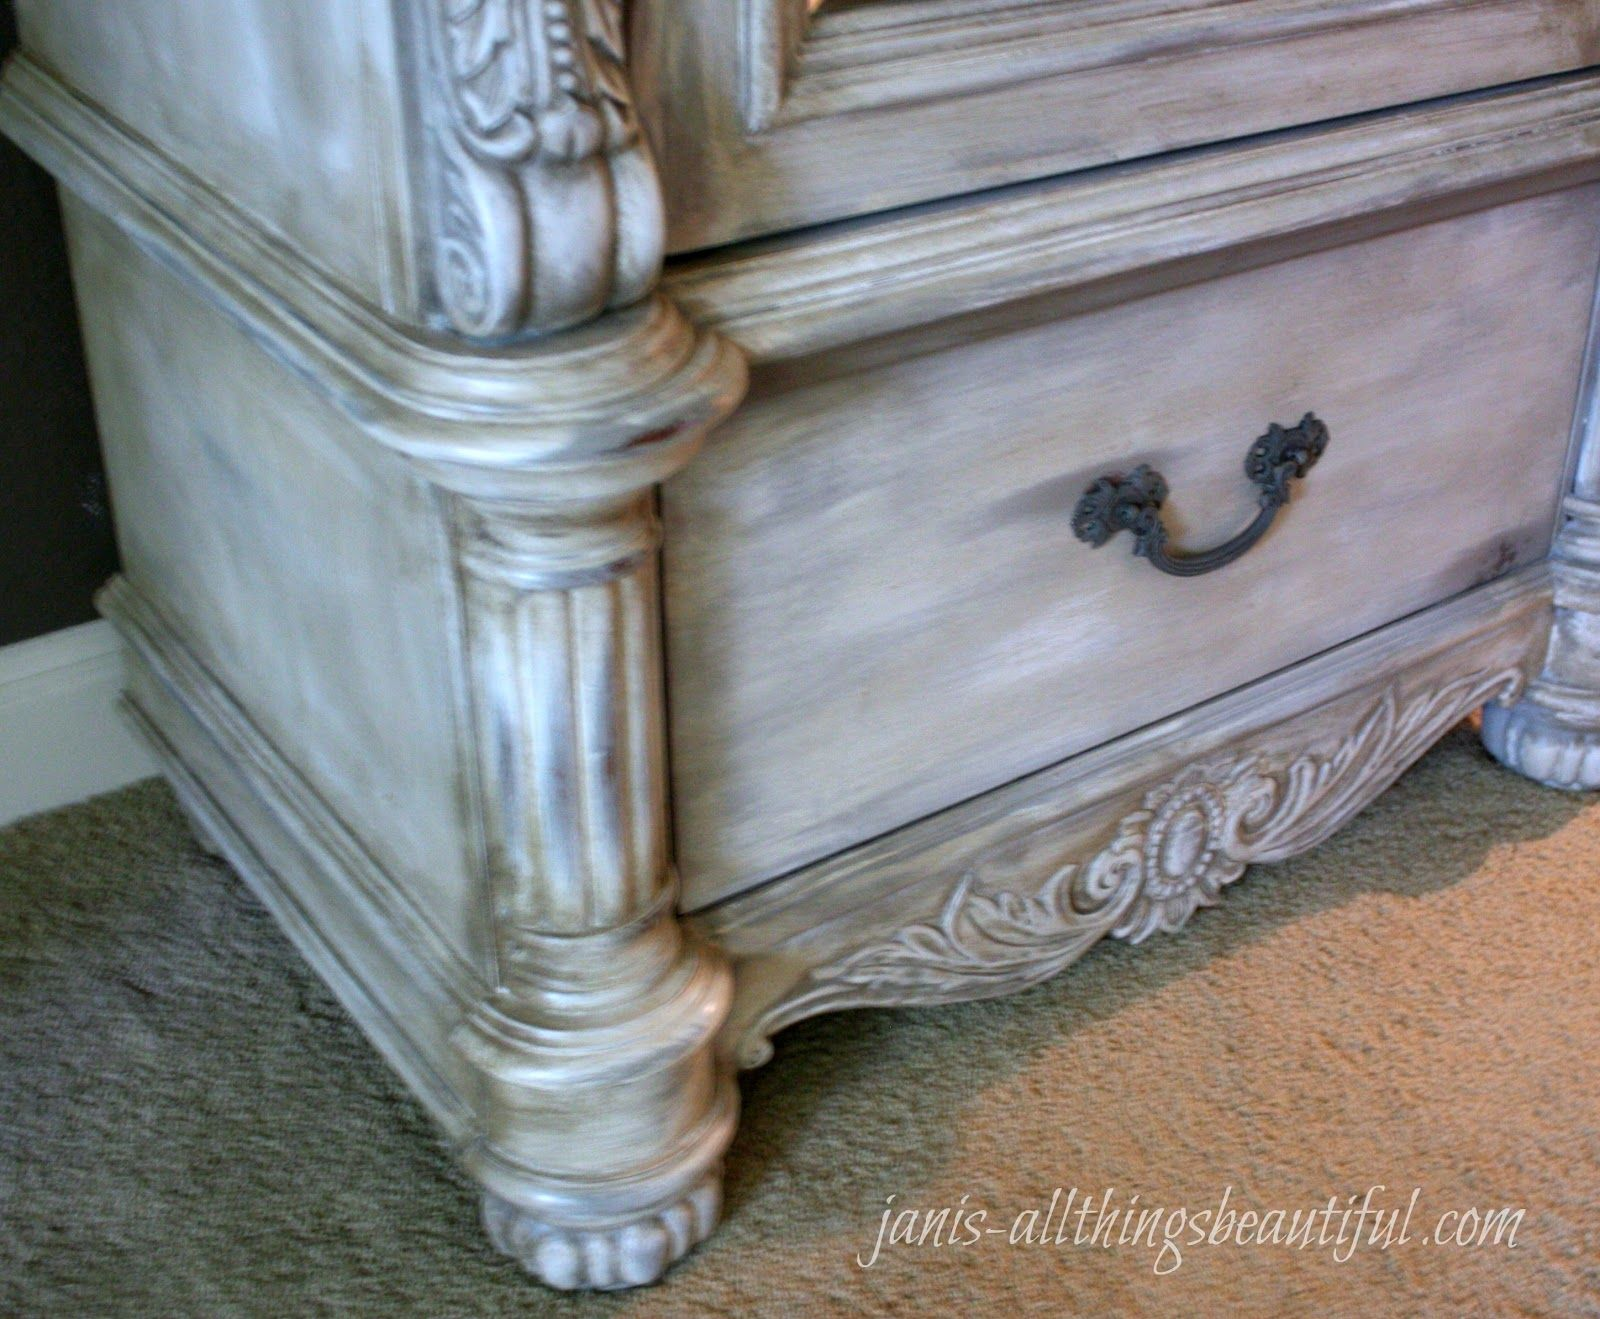 All Things Beautiful: Armoire {Painted Furniture} Makeover   Interesting  Info On WAXING.